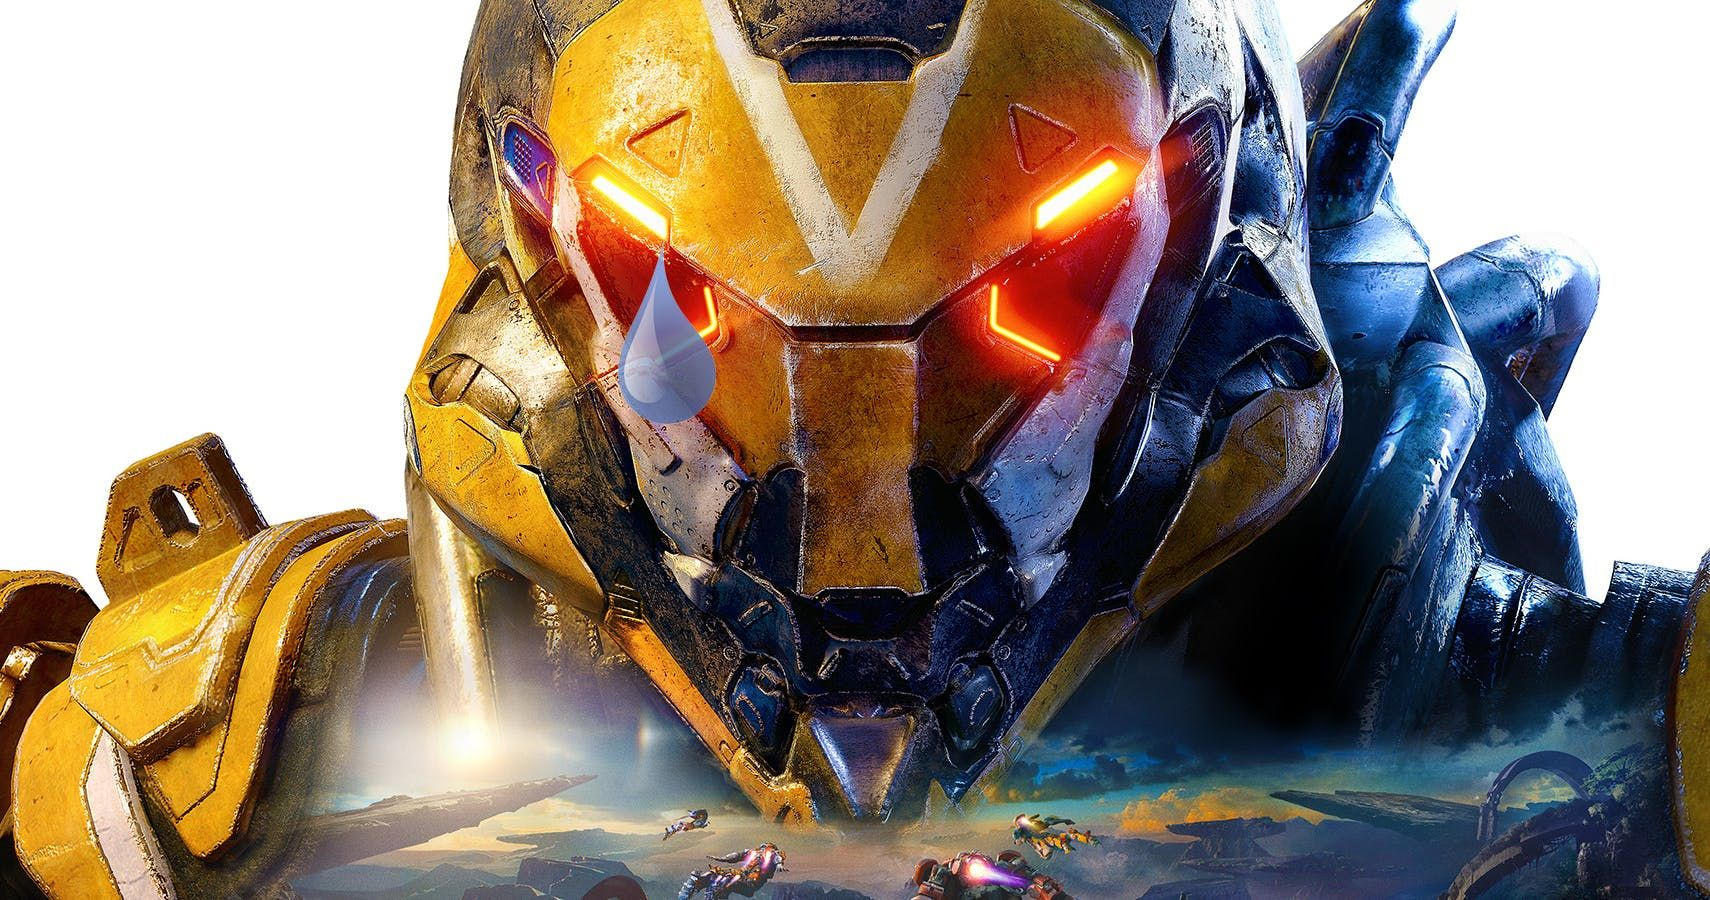 Bioware Anthem Get Hyped With Images Anthem Game Anthem